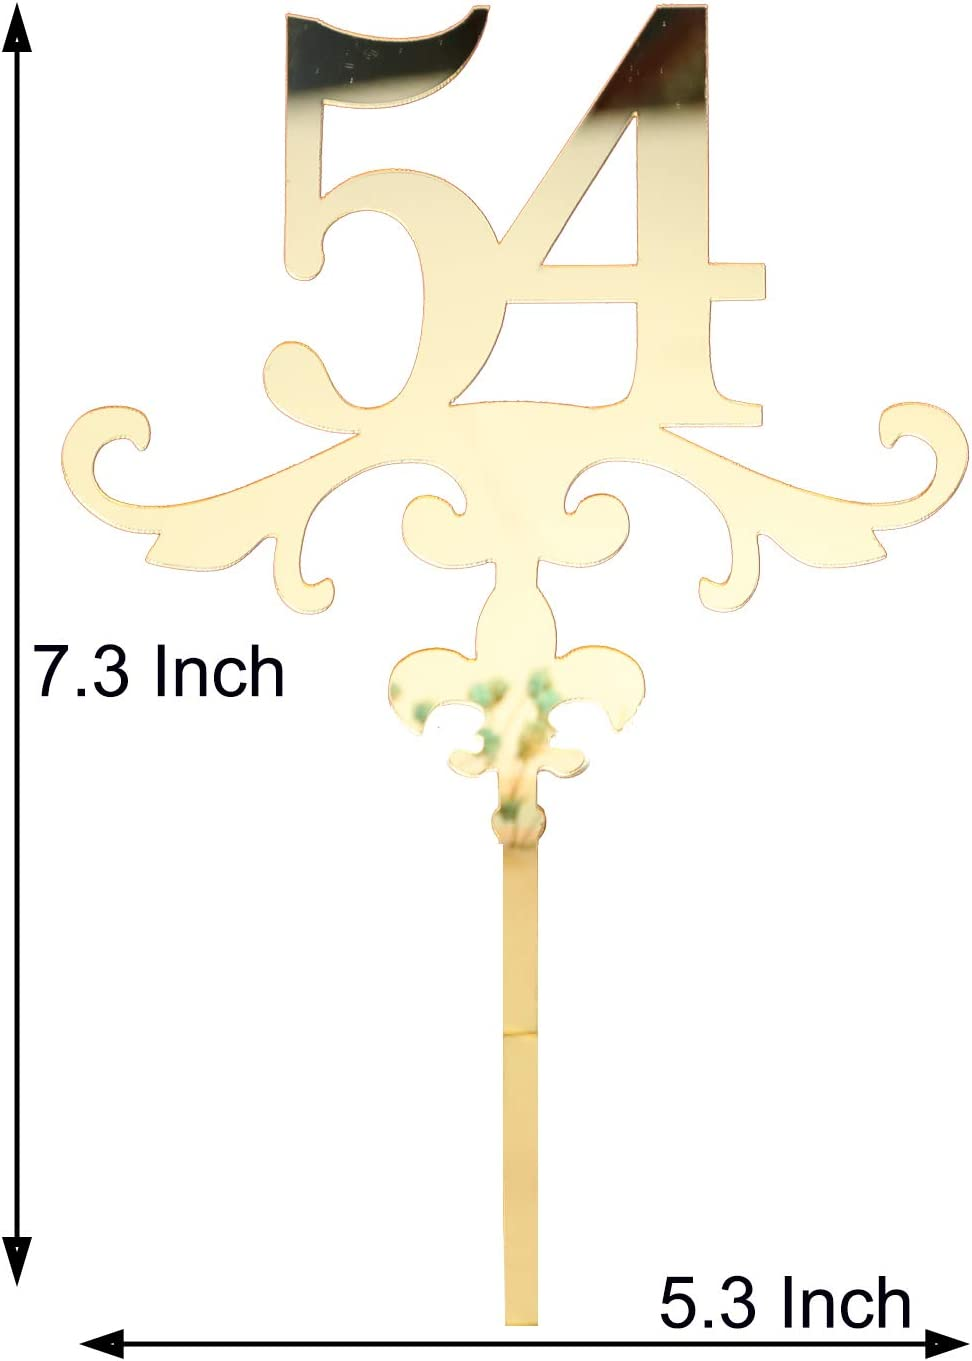 Acrylic Cake Topper Mirror Gold Number 51 Cake Topper Ideal for 51th Birthday or Anniversary Celebration